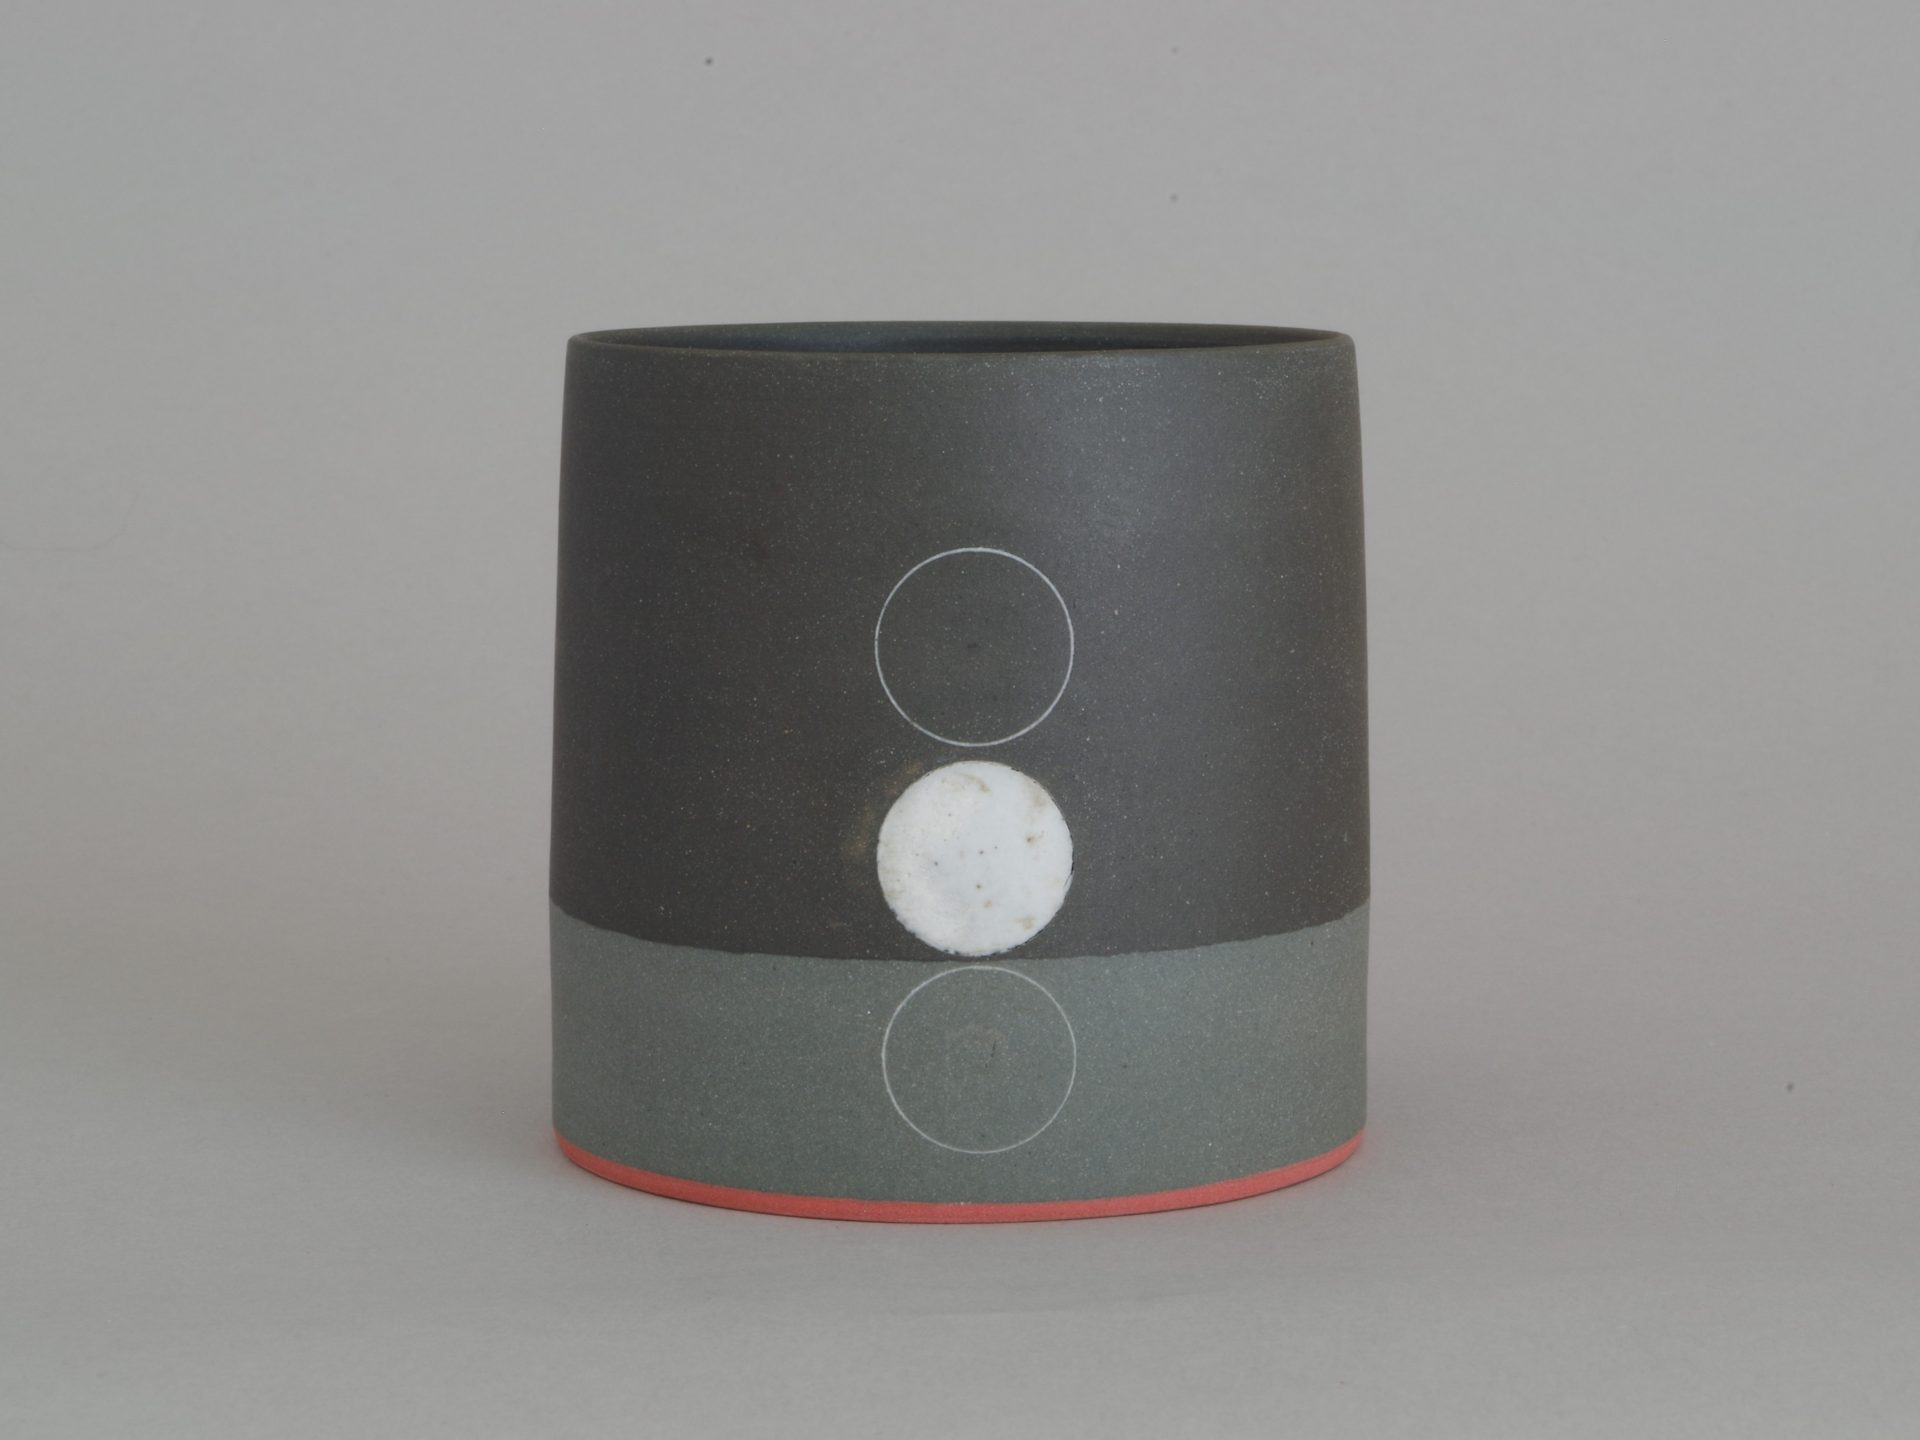 58-night-light-h7.5cm-jan-13-£250